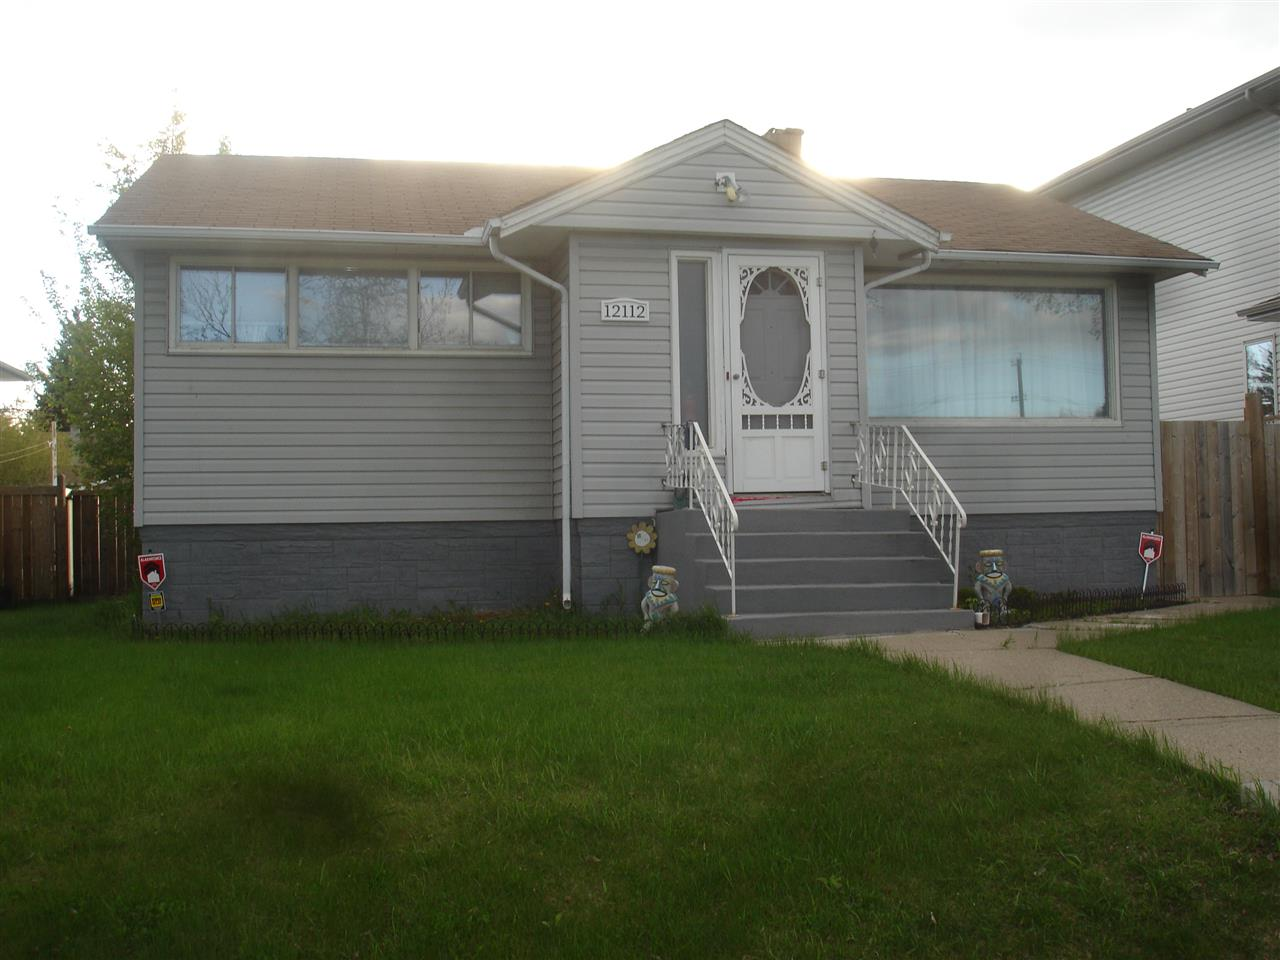 Main Photo: 12112 128 Street in Edmonton: Zone 04 House for sale : MLS® # E4064651